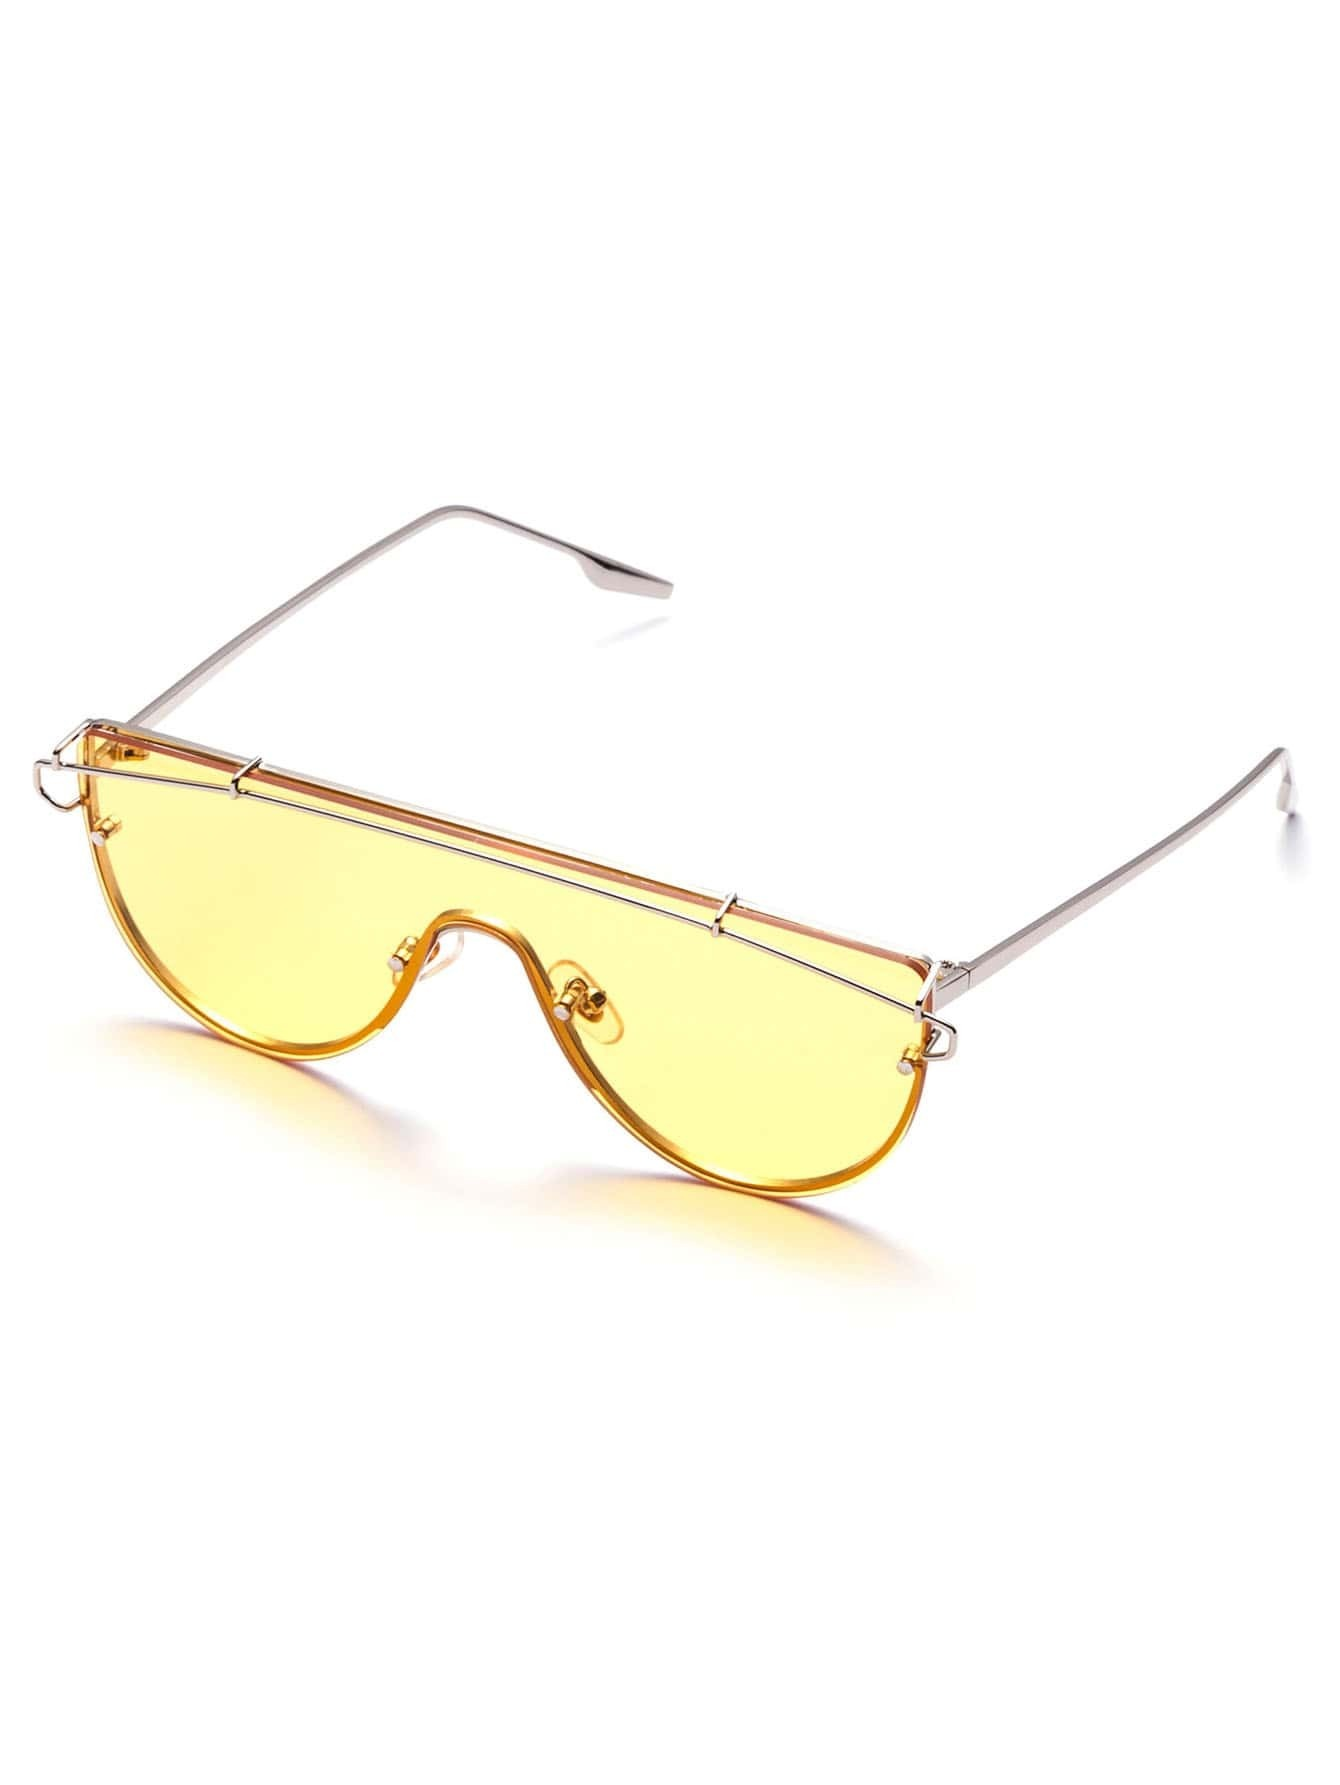 Best Aviator Style Sunglasses